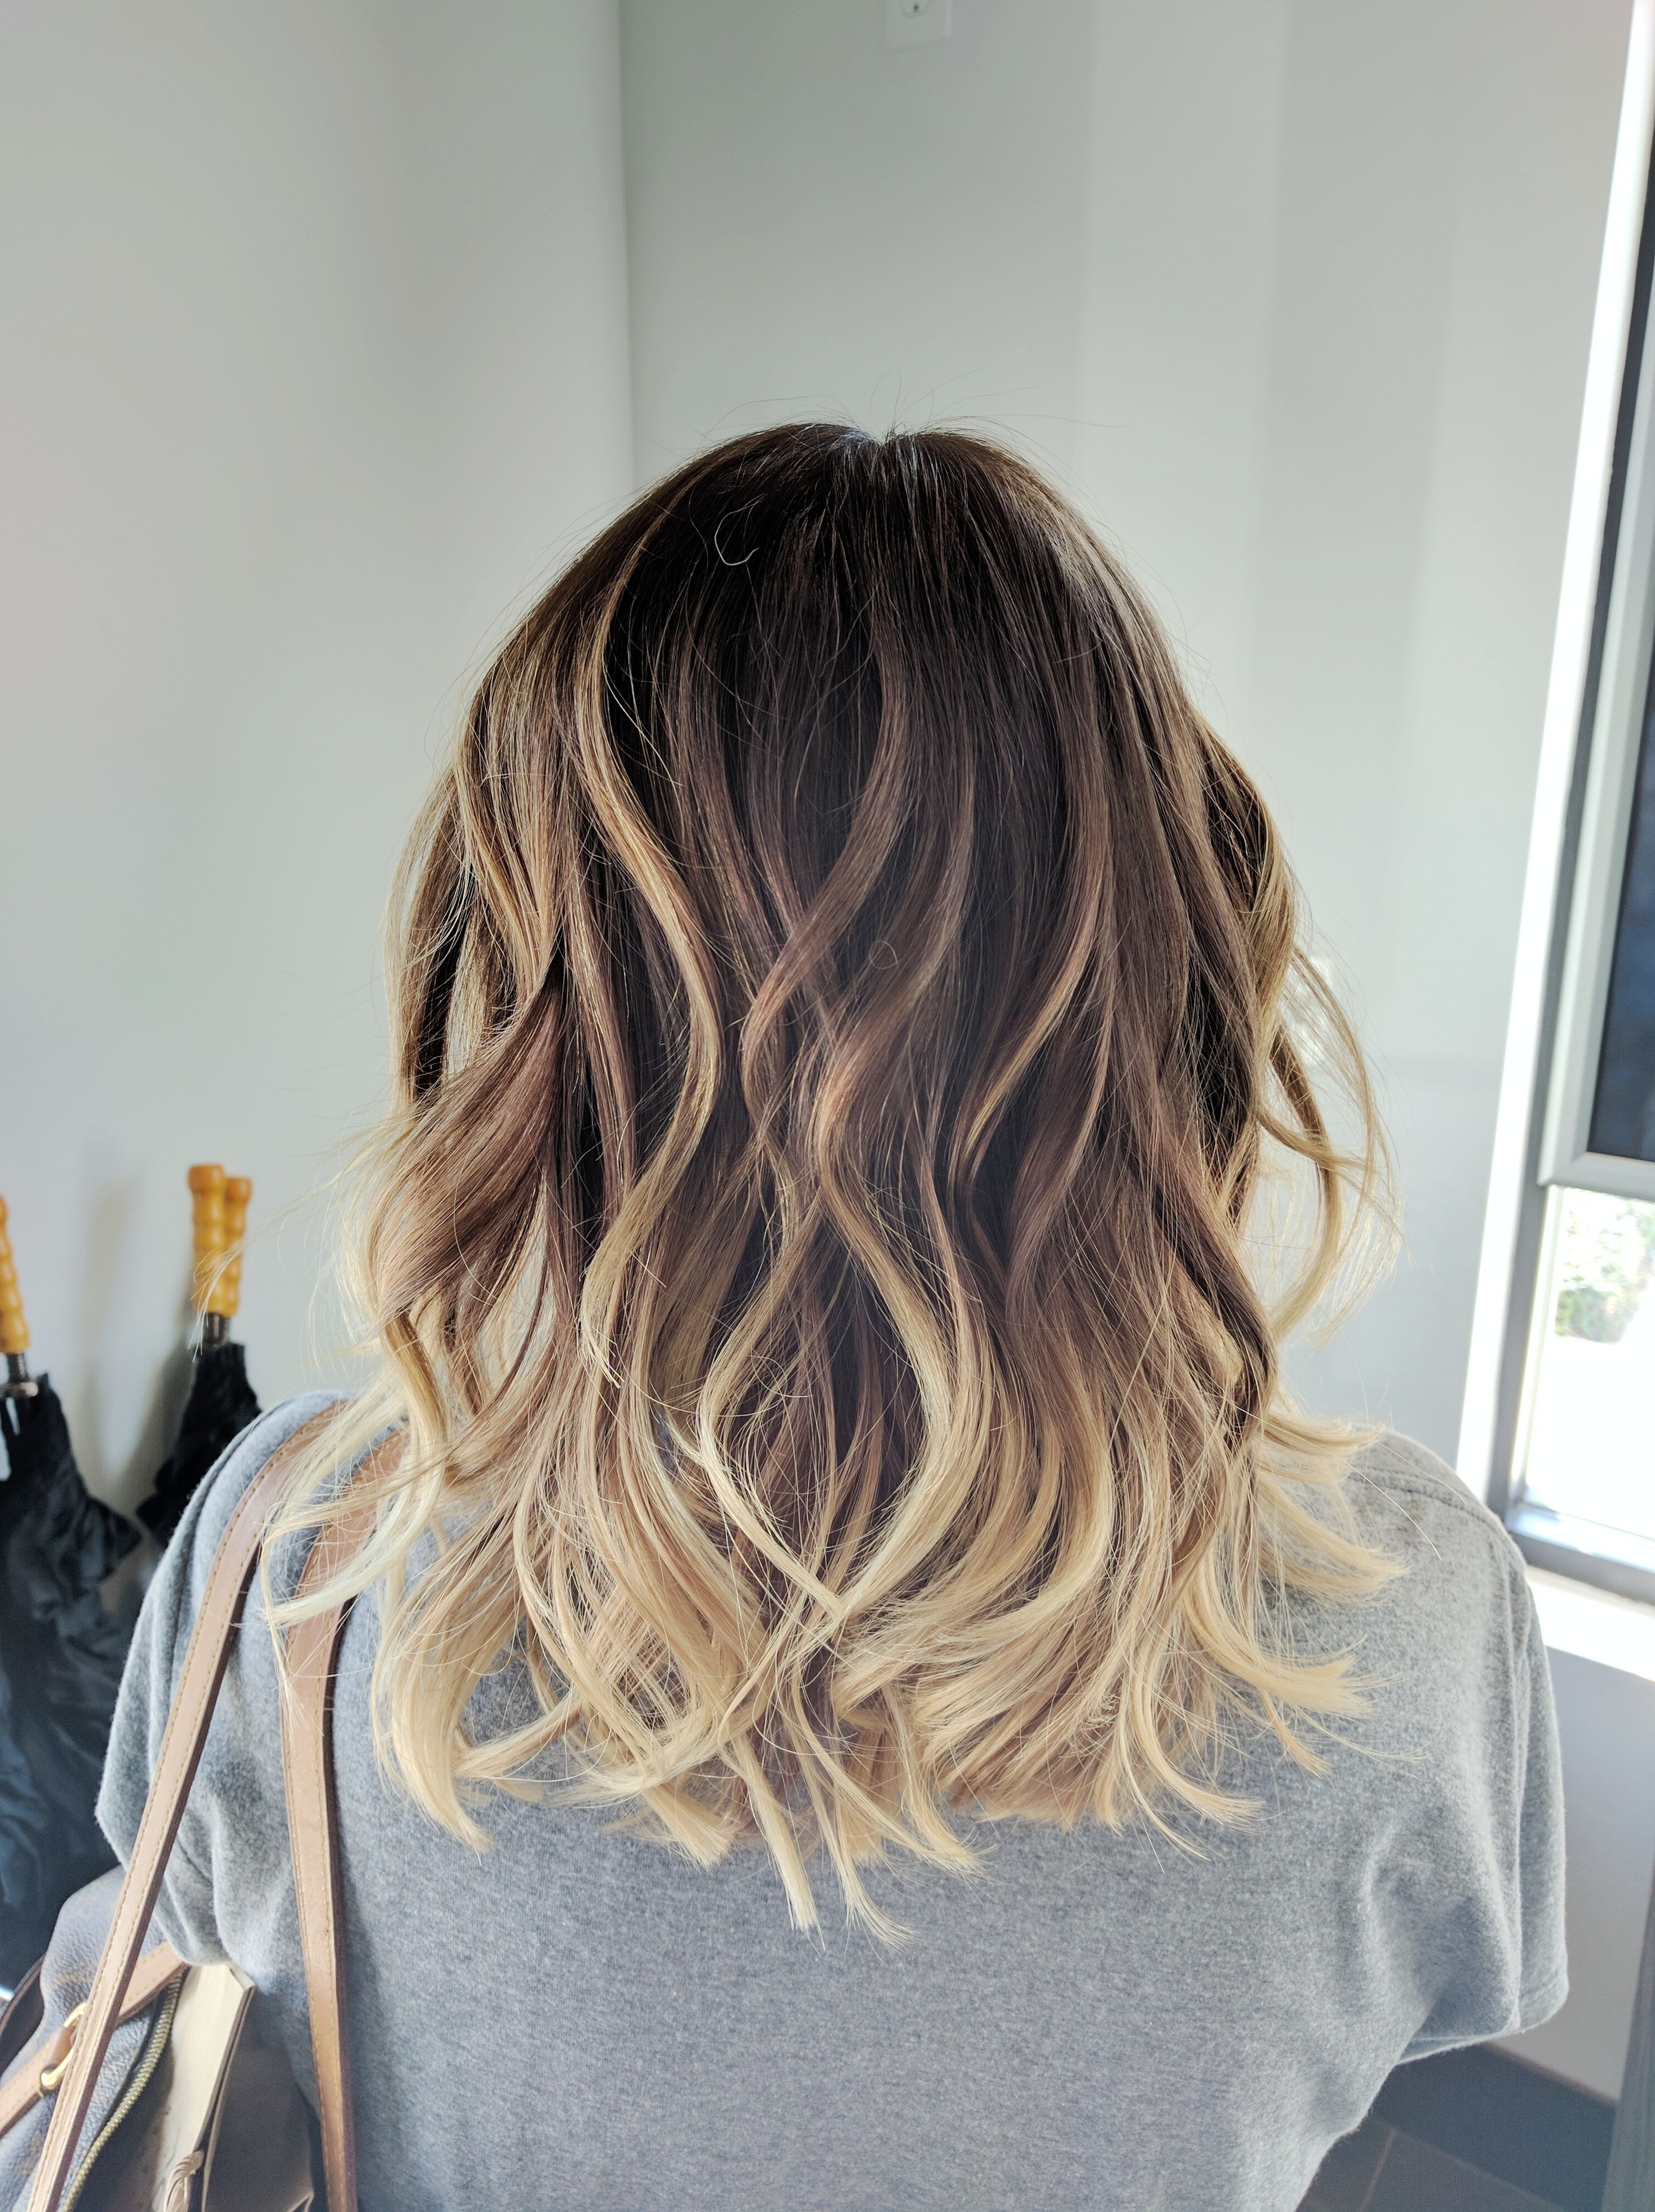 Ombre Balayage Color Melt Blonde Highlights Long Bob Medium Length Throughout Widely Used Shoulder Length Ombre Blonde Hairstyles (Gallery 6 of 20)